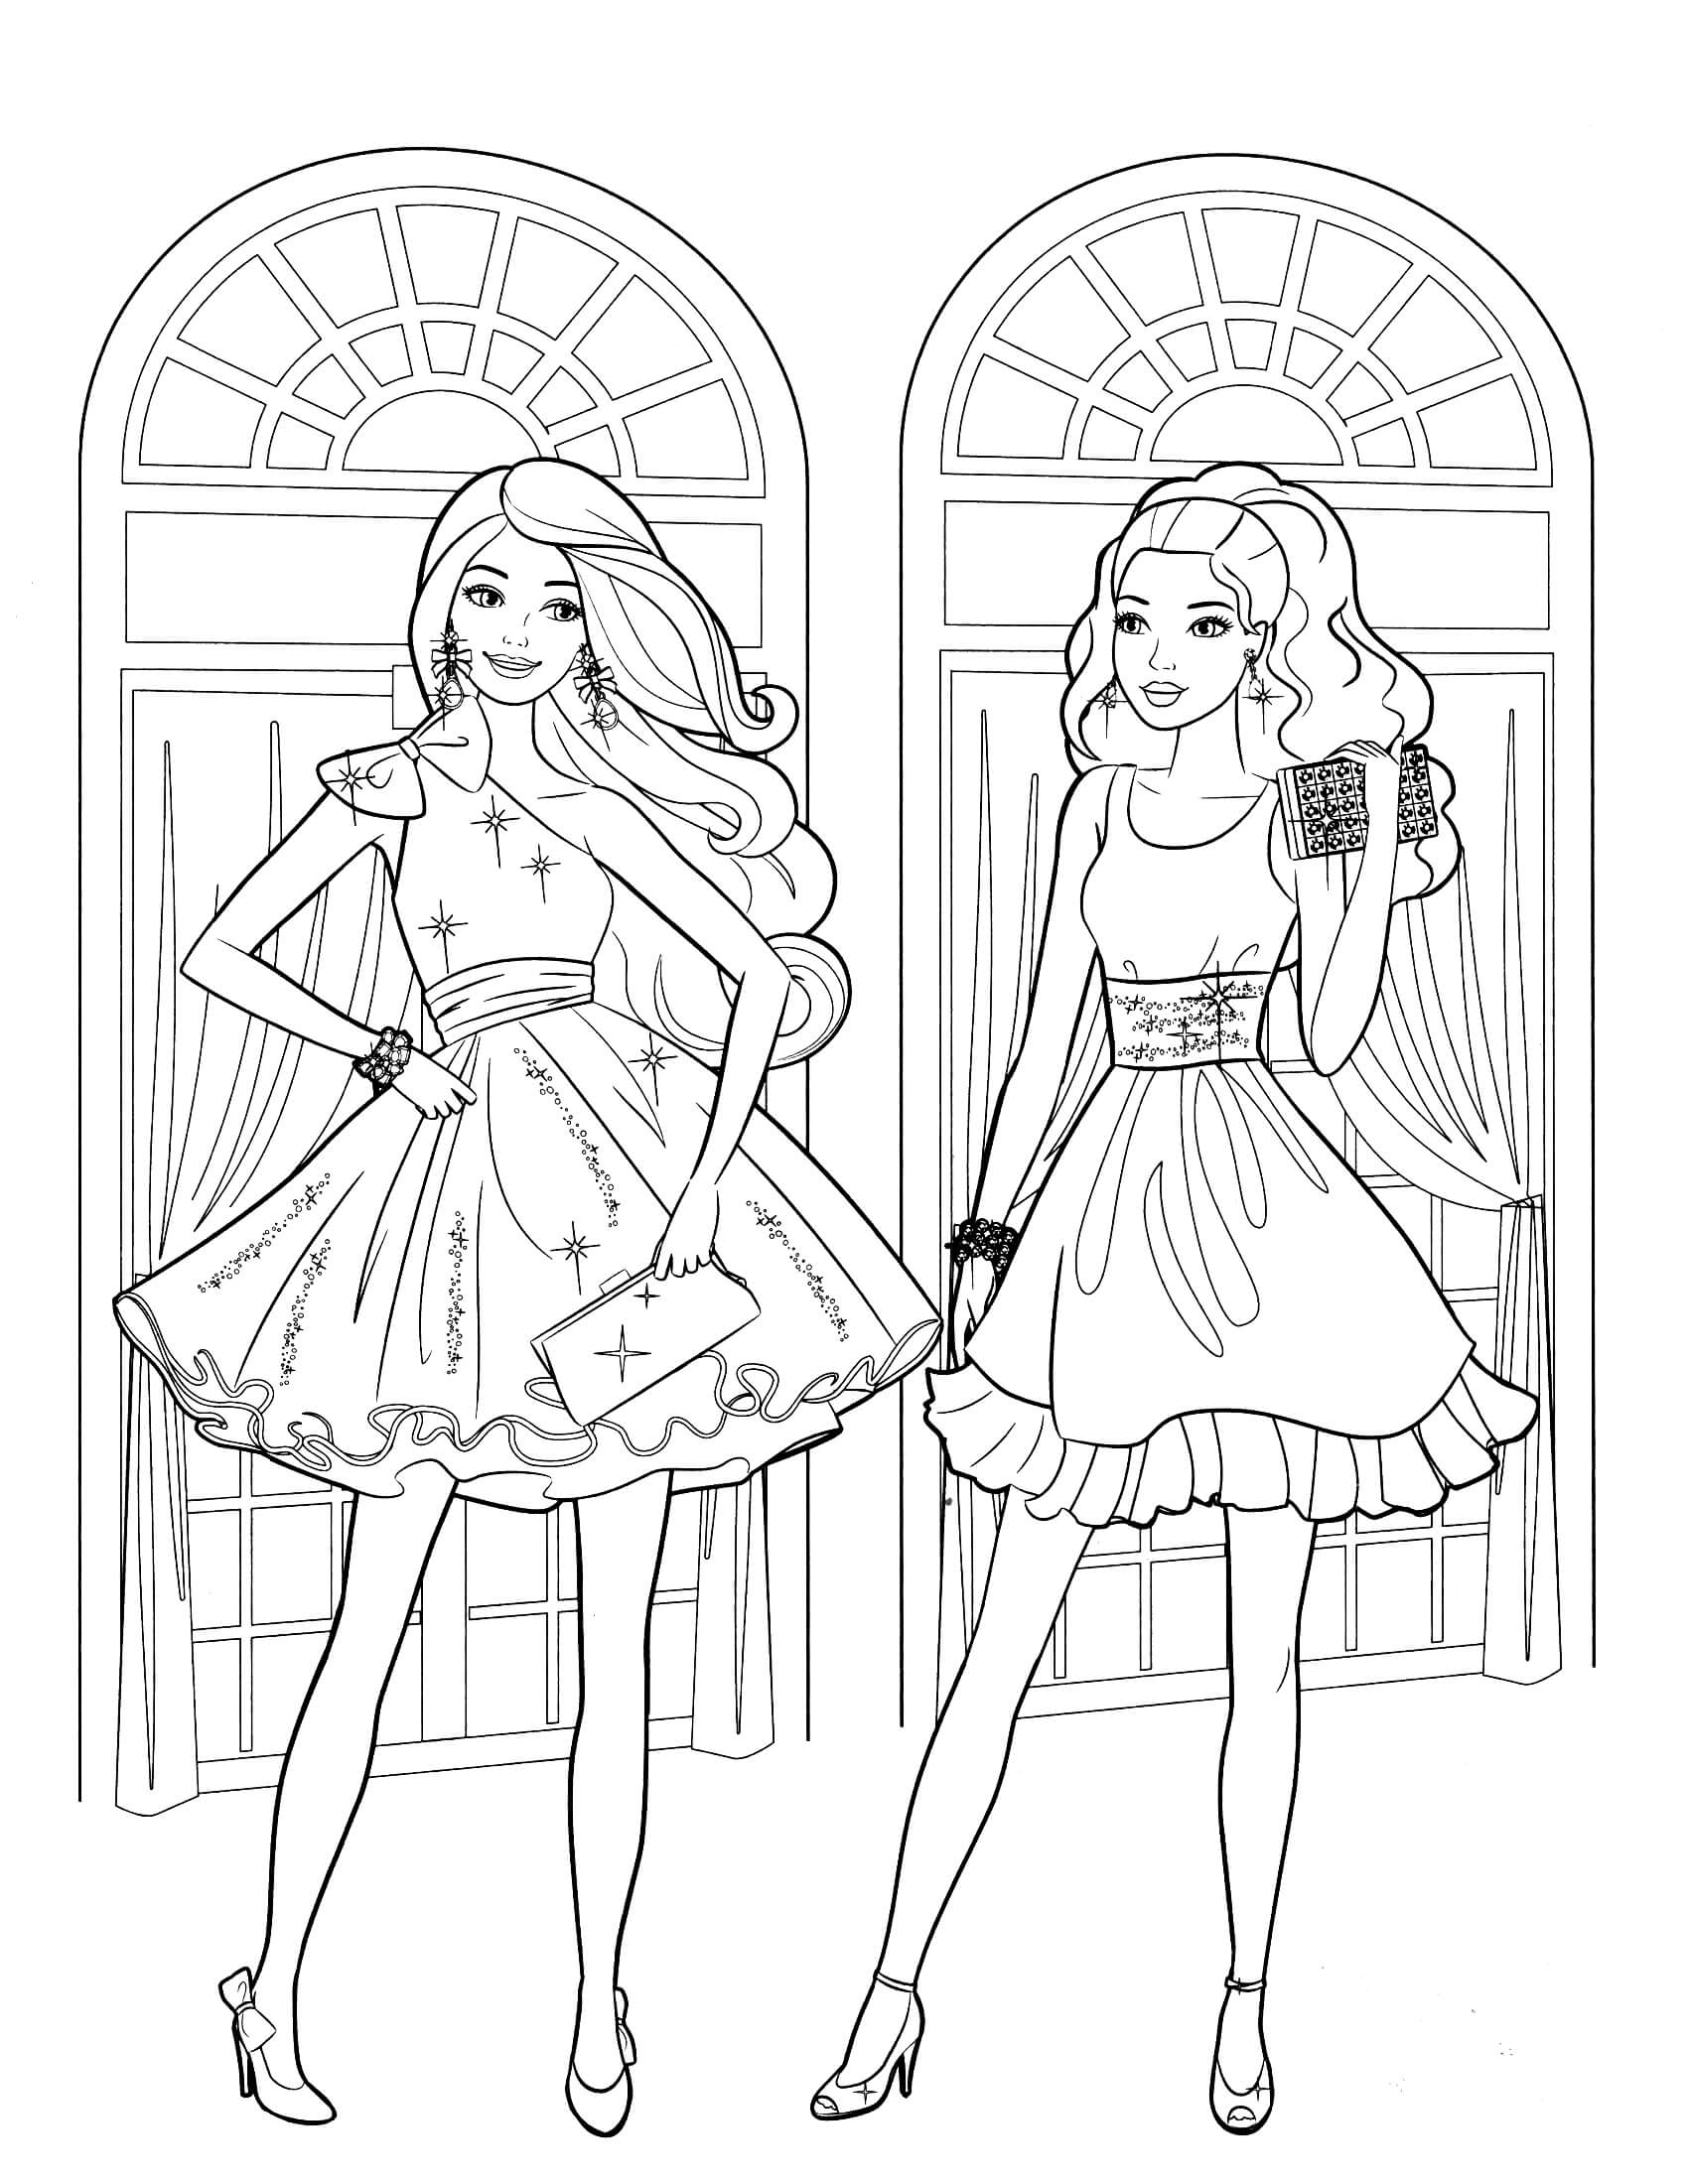 barbie color sheets barbie dream house coloring pages at getcoloringscom sheets color barbie